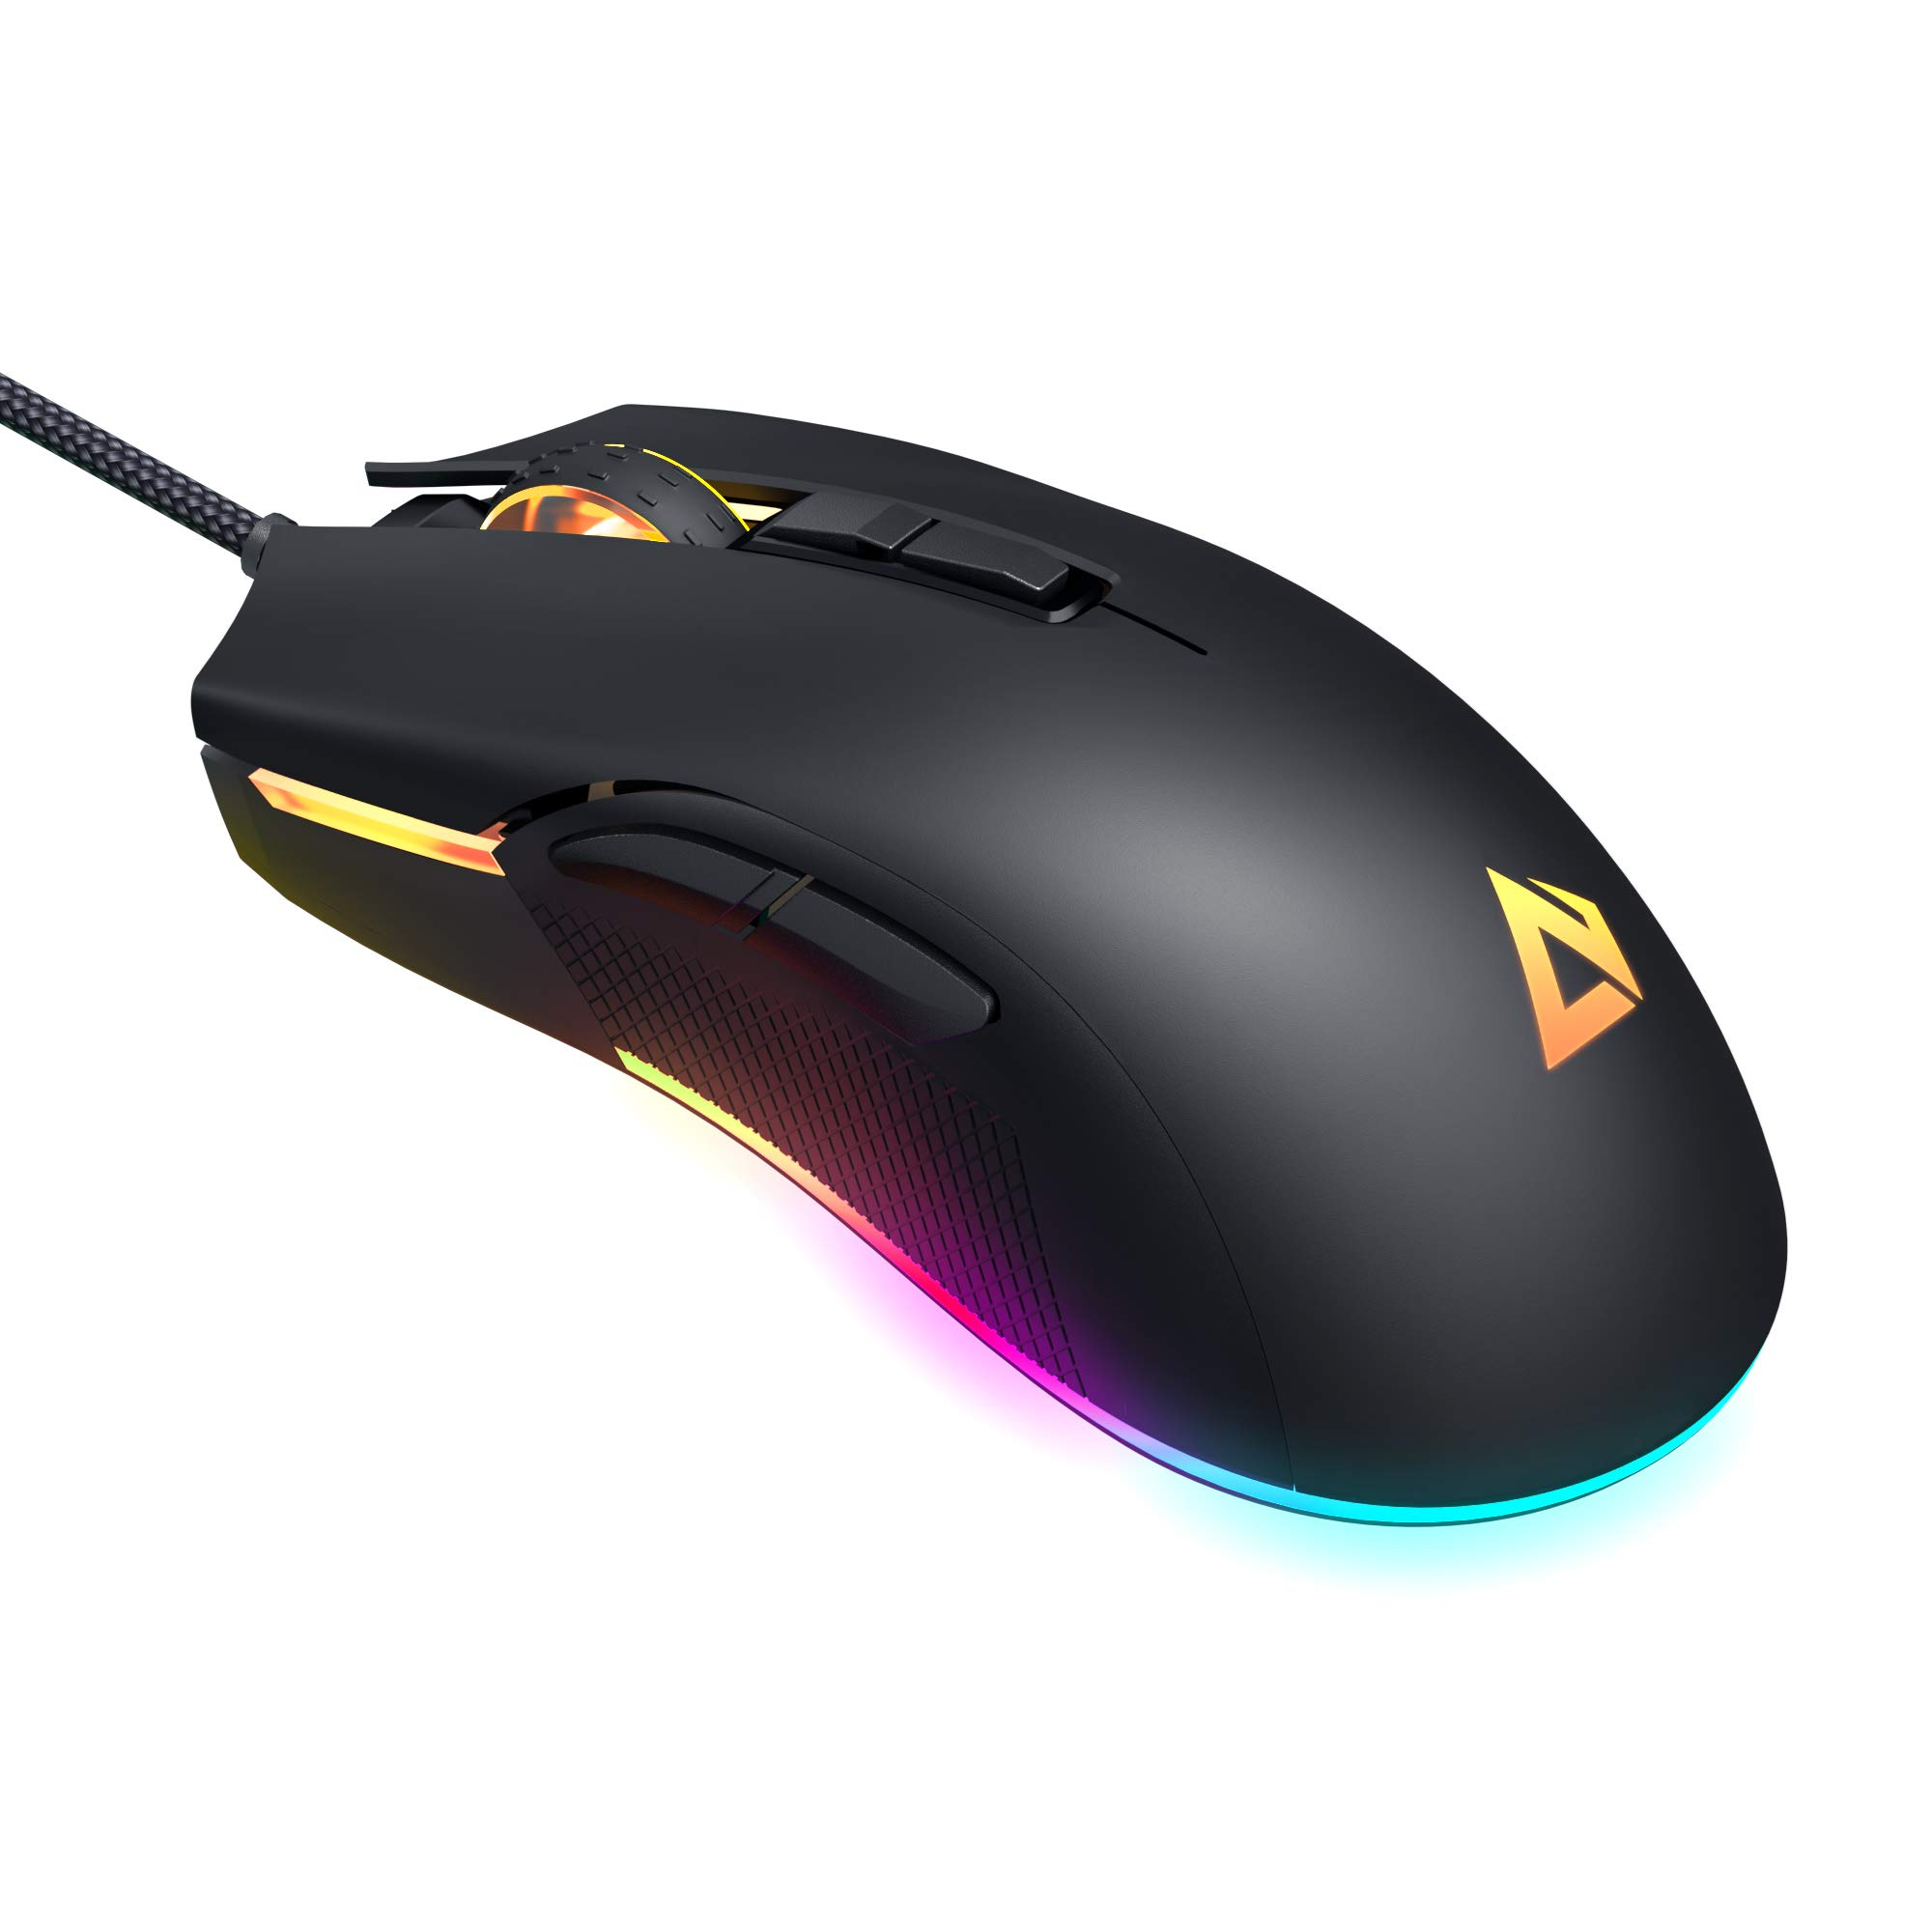 AUKEY RGB Gaming Mouse, True 5000 DPI FPS Mouse with 16.8 Million Color, 6 Programmable Buttons, Ergonomic Design, High Precision Optical Mouse for PC and Laptop Gamers, Black by AUKEY